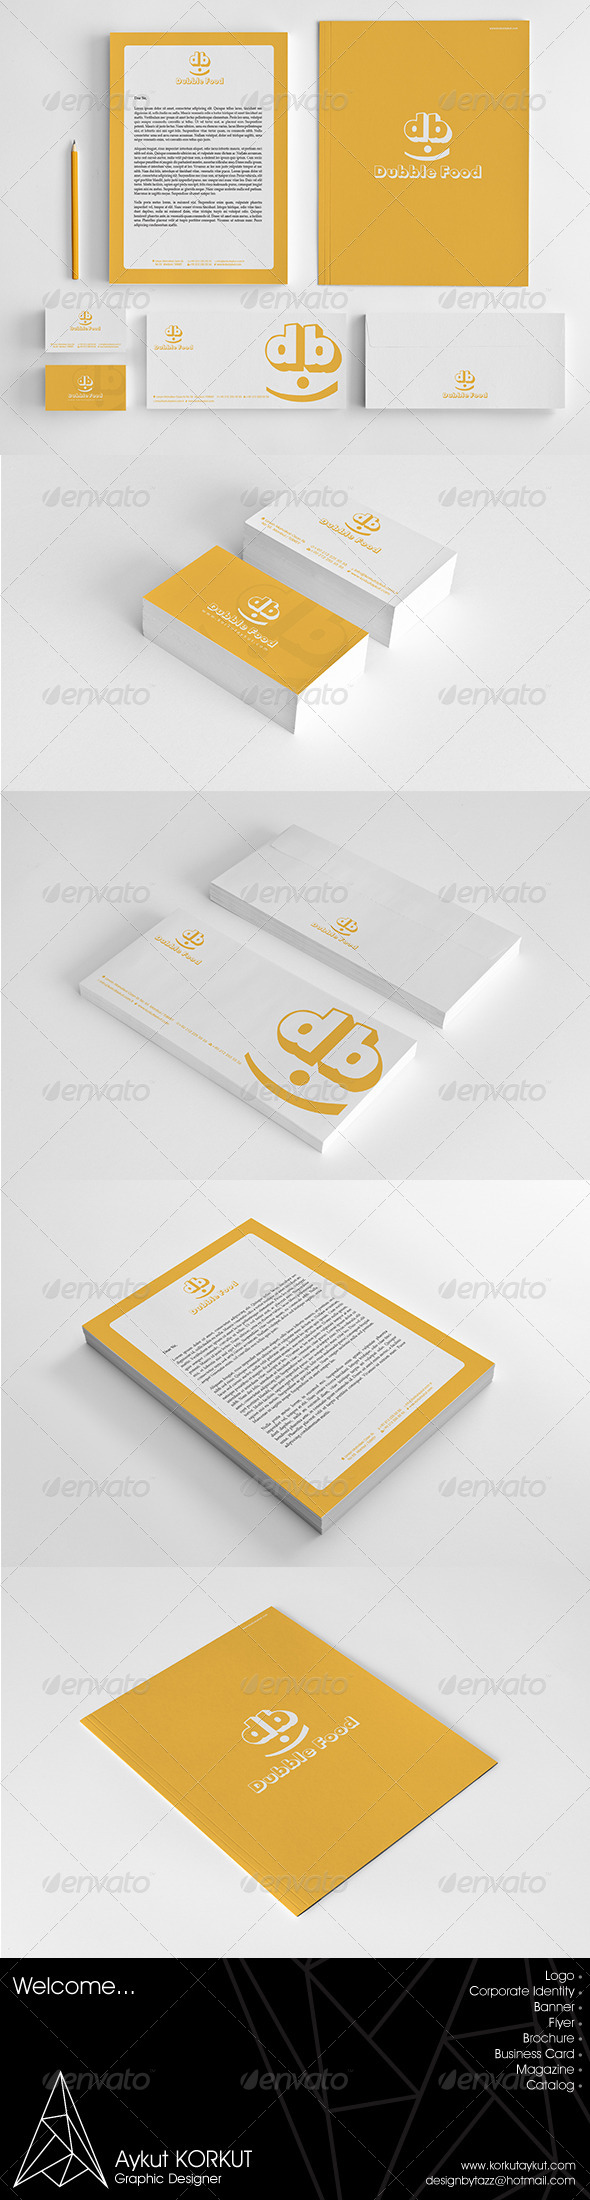 GraphicRiver Dubble Food Corporate Identity Package 5965244